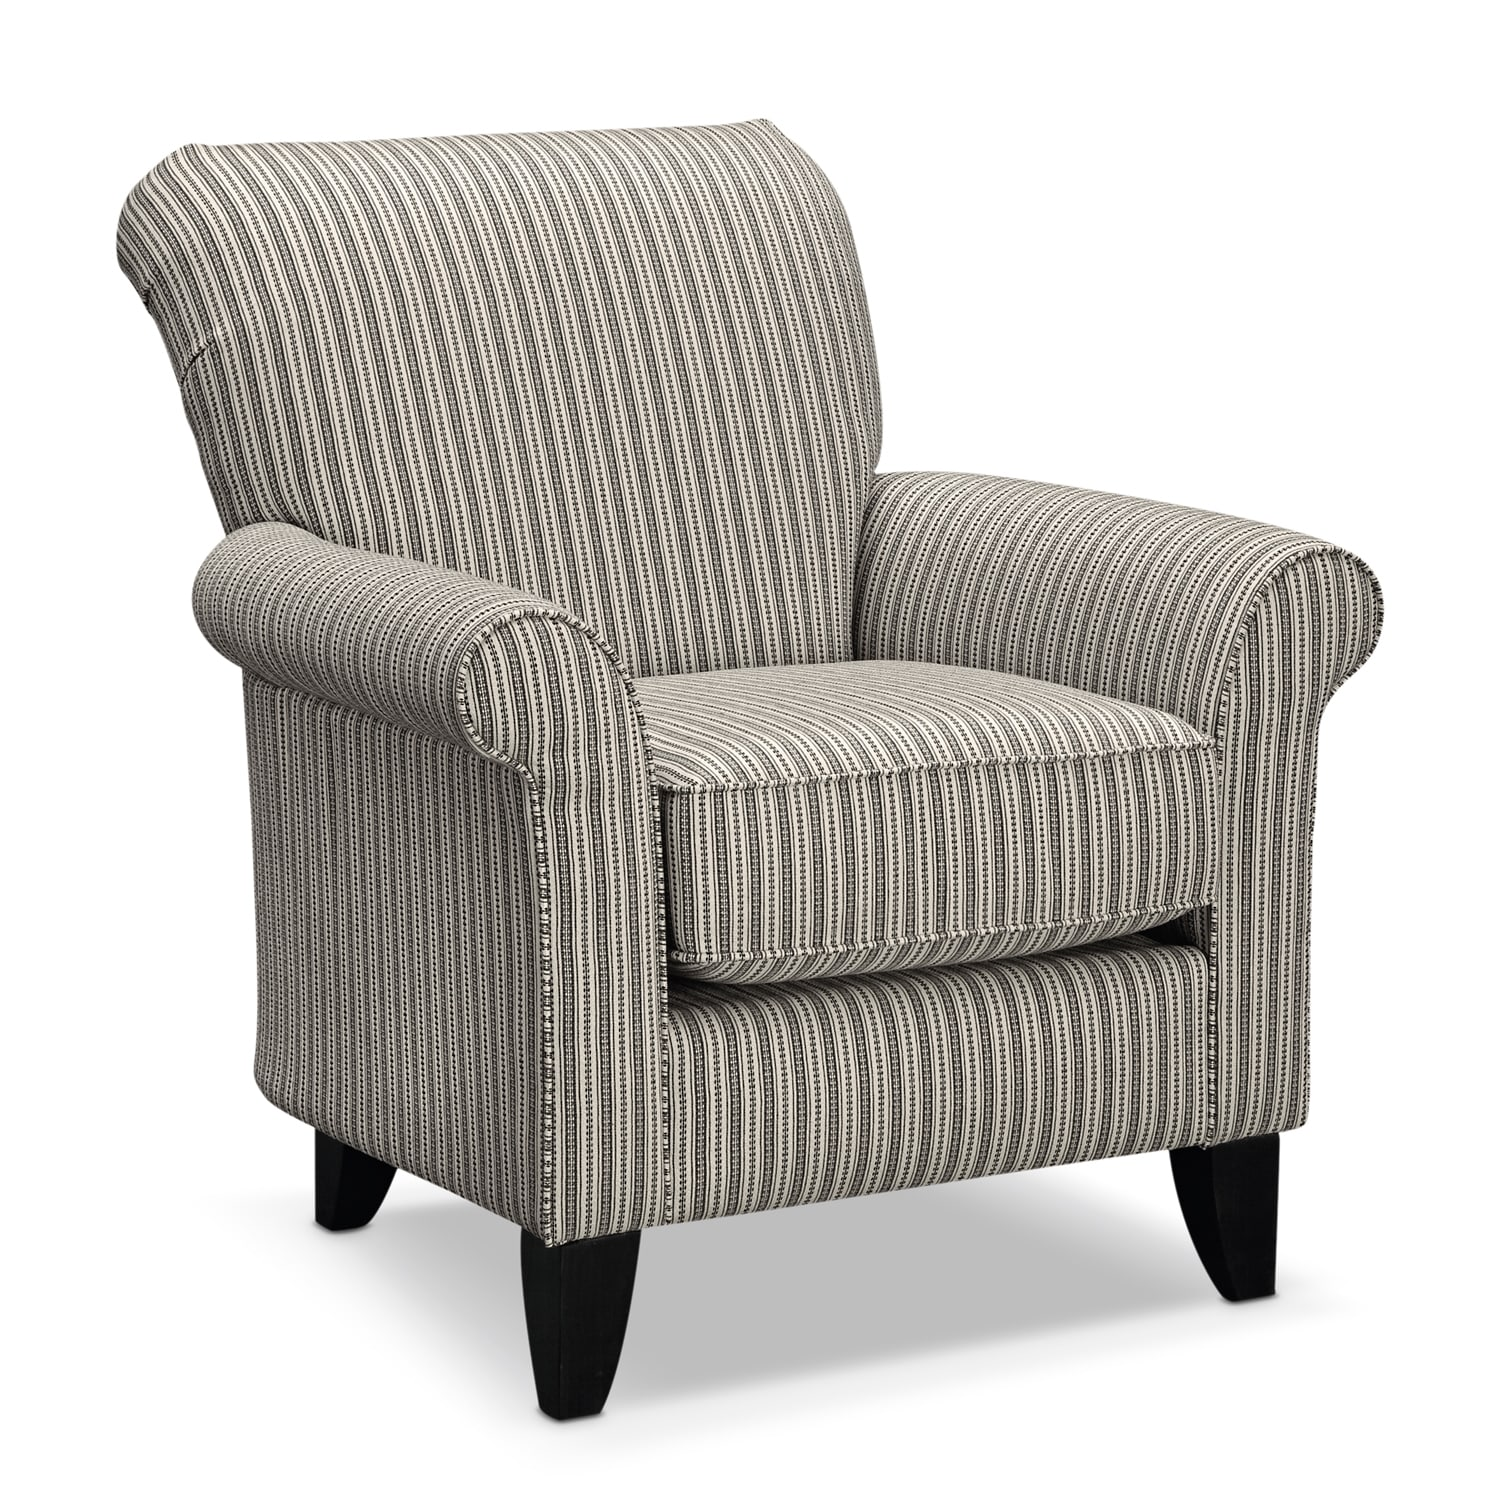 Colette accent chair gray stripe value city furniture for Sitting room chairs